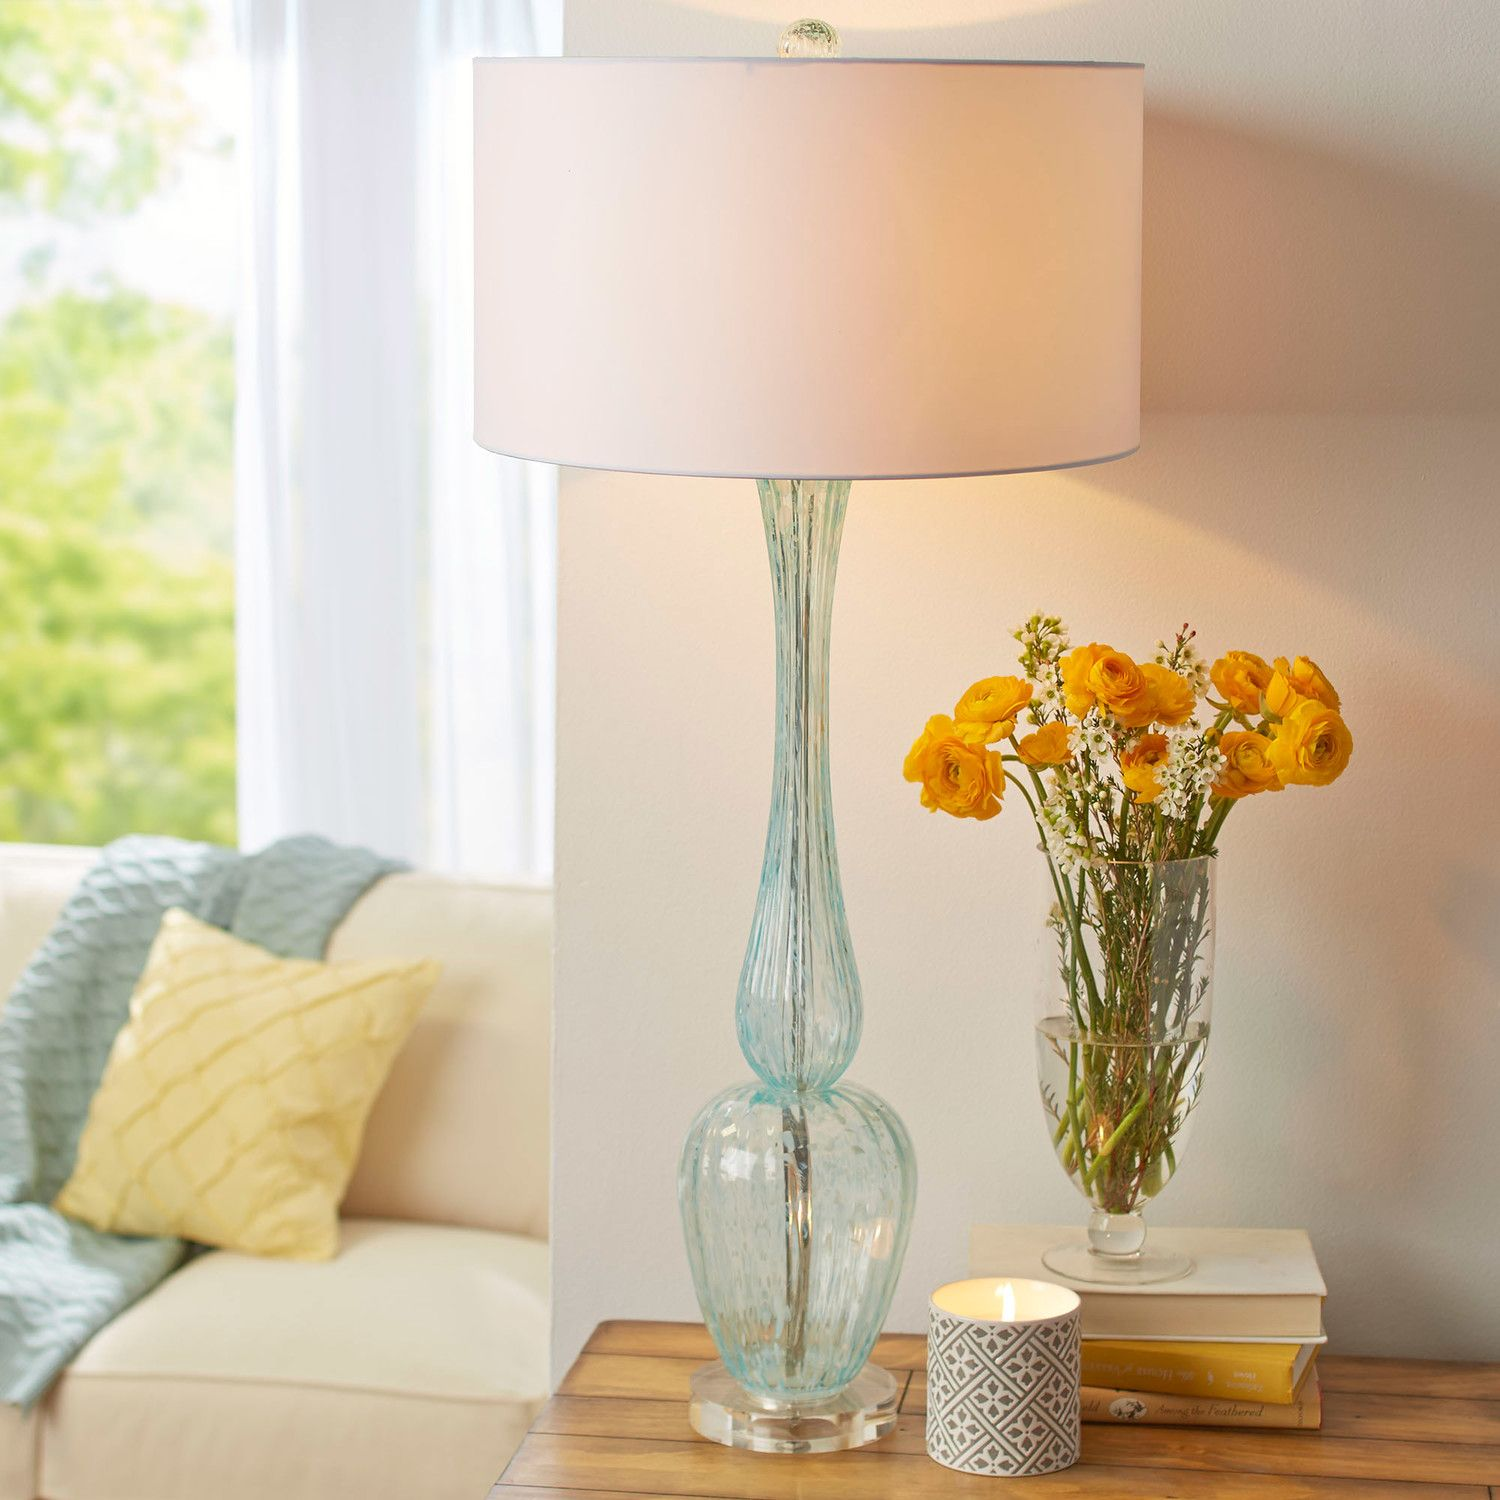 Marino Glass Table Lamp Glass table lamps, Glass table